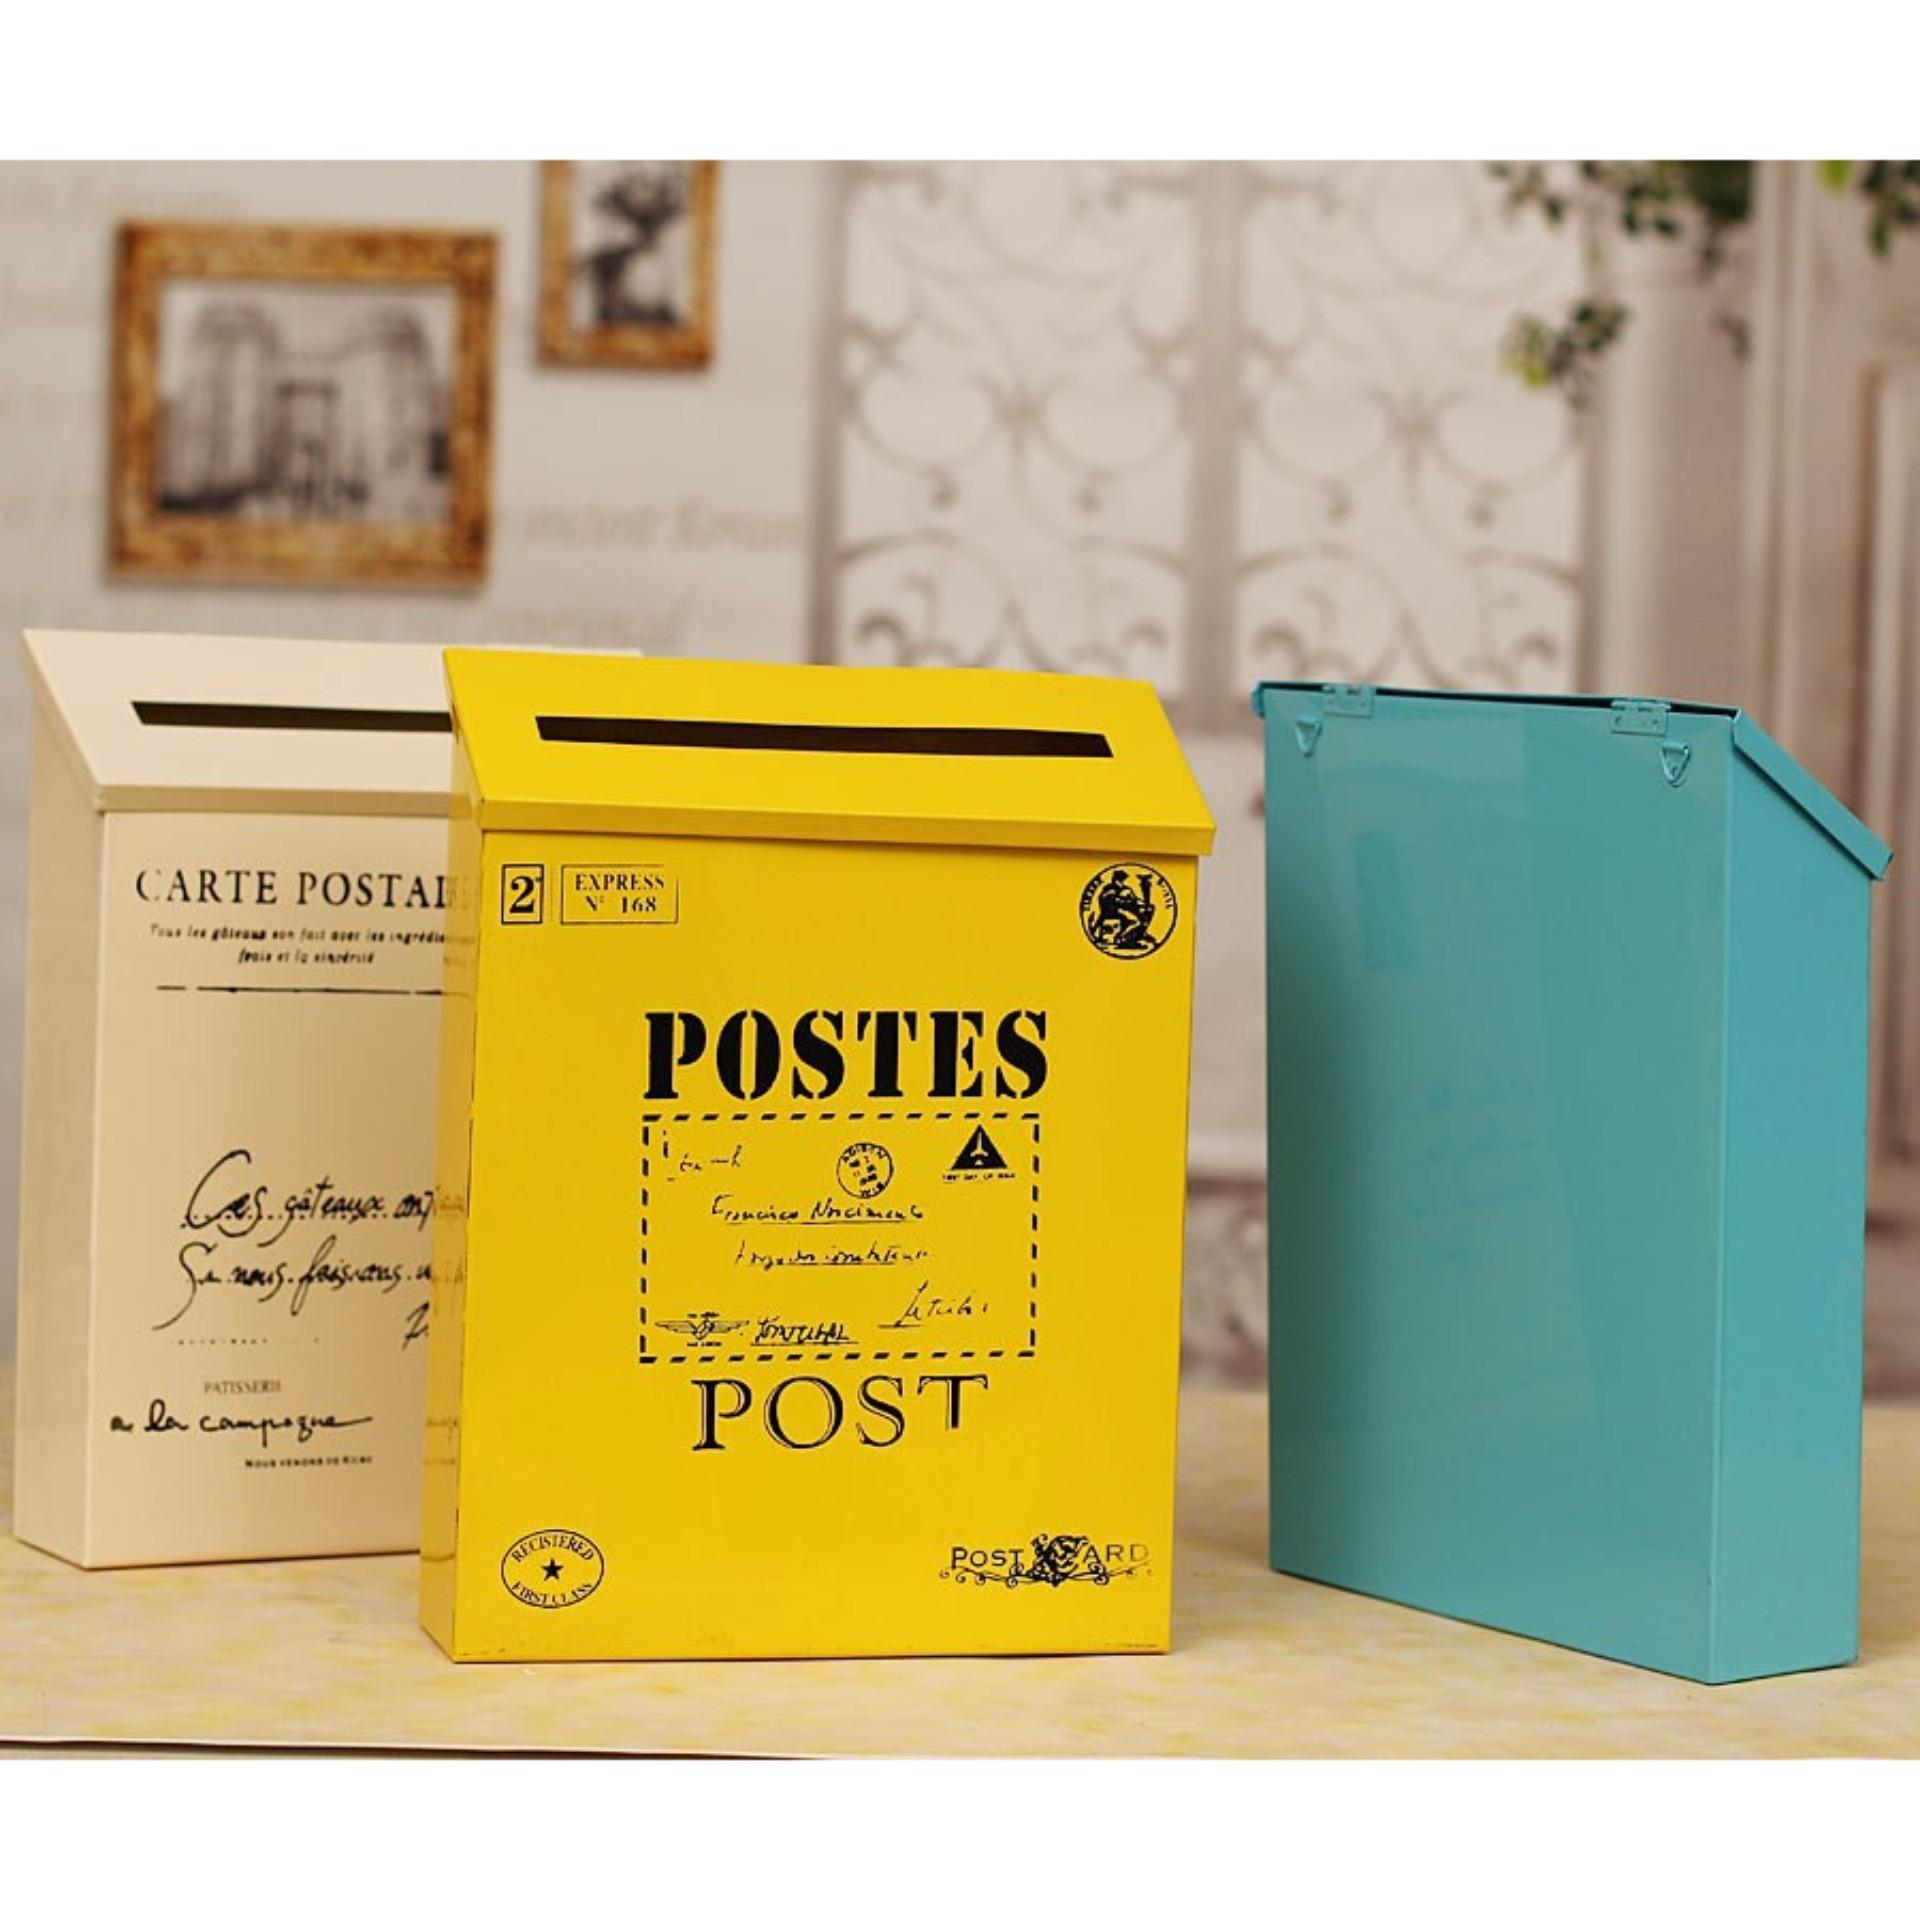 Mailbox for sale - Postbox prices, brands & review in Philippines ...